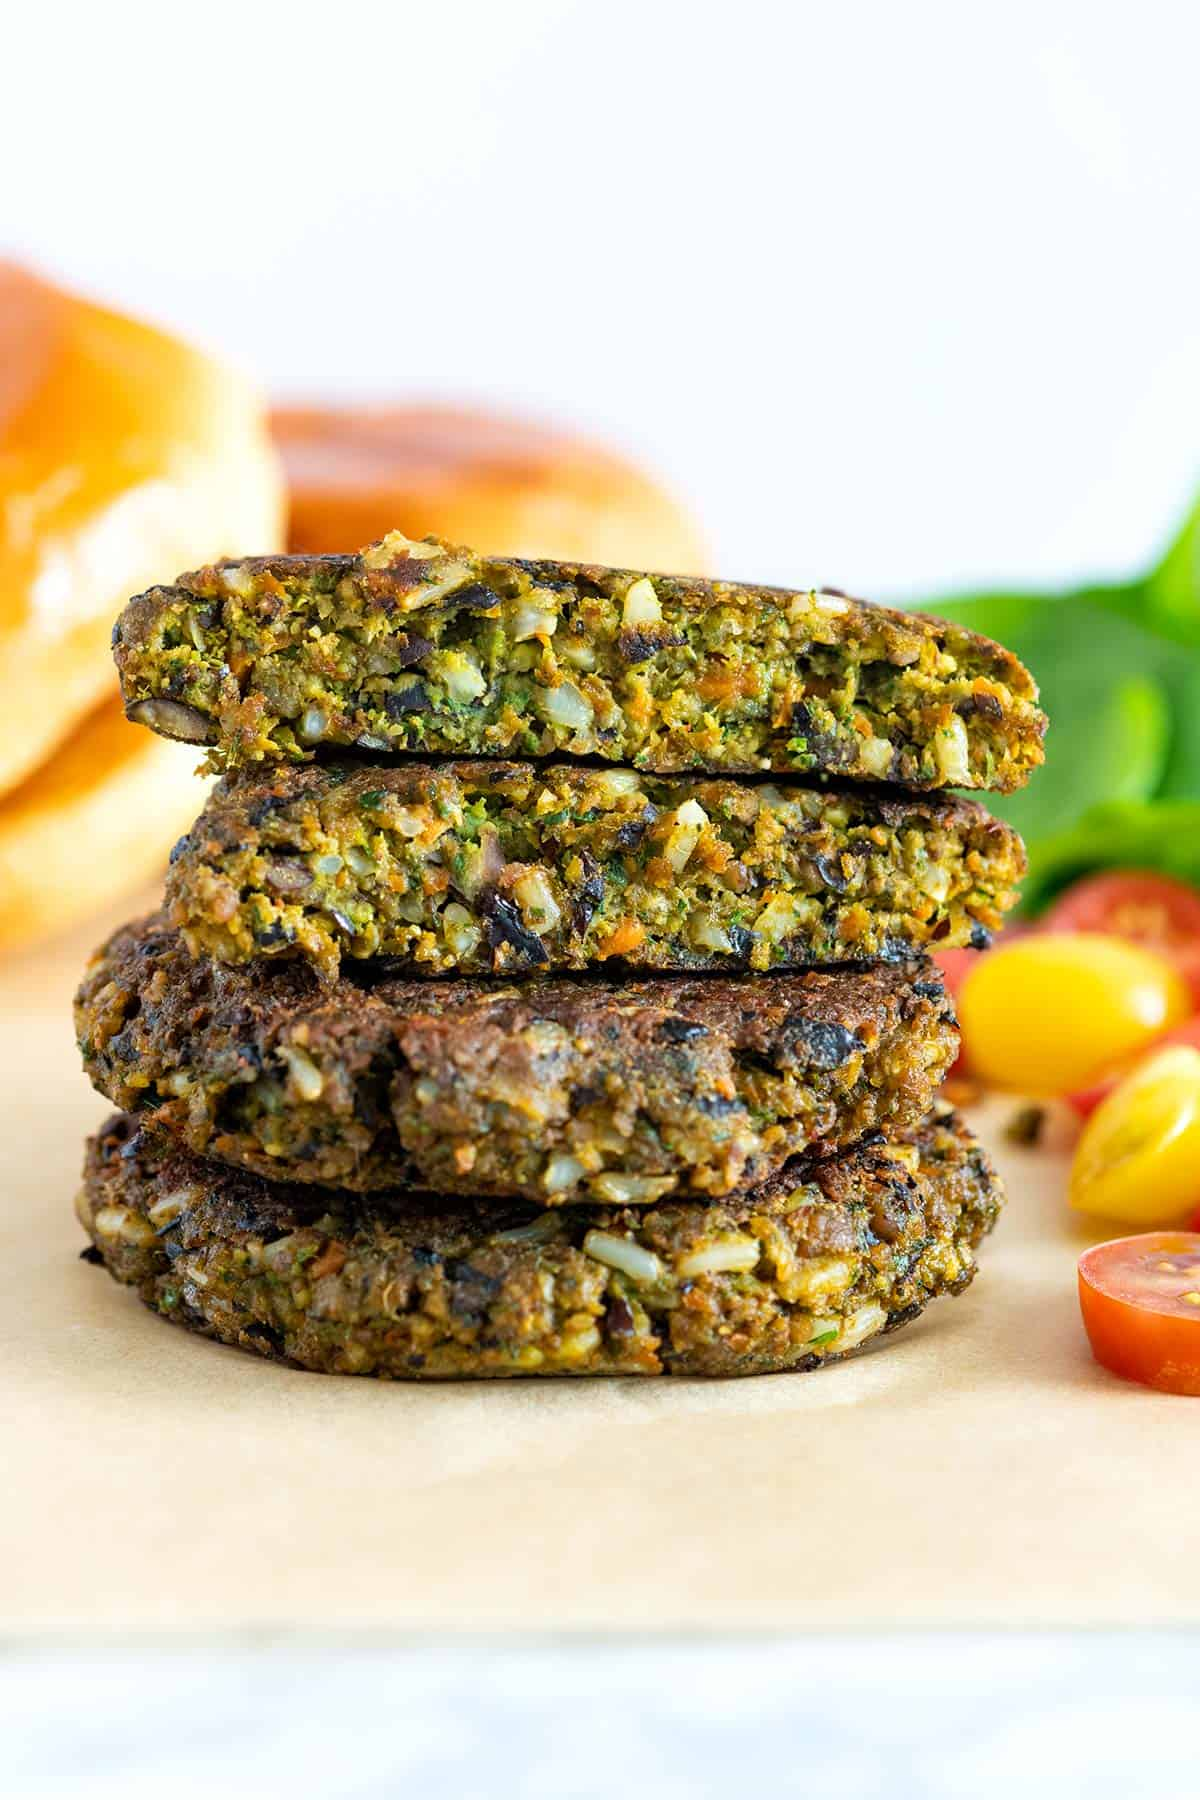 Veggie burger patties